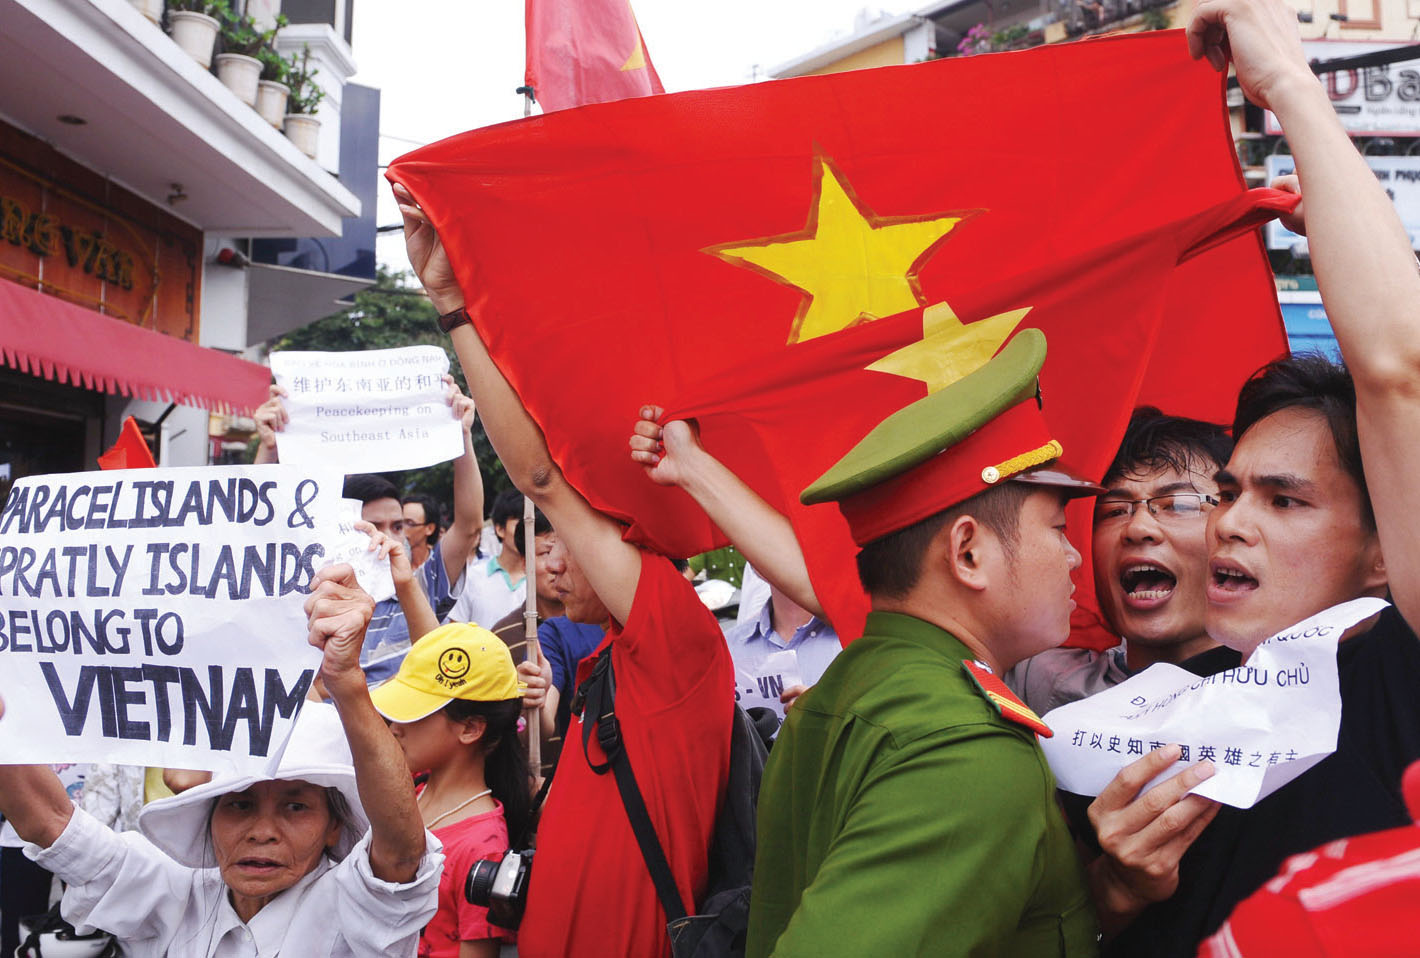 China y Vietnam, desconfianza entre vecinos